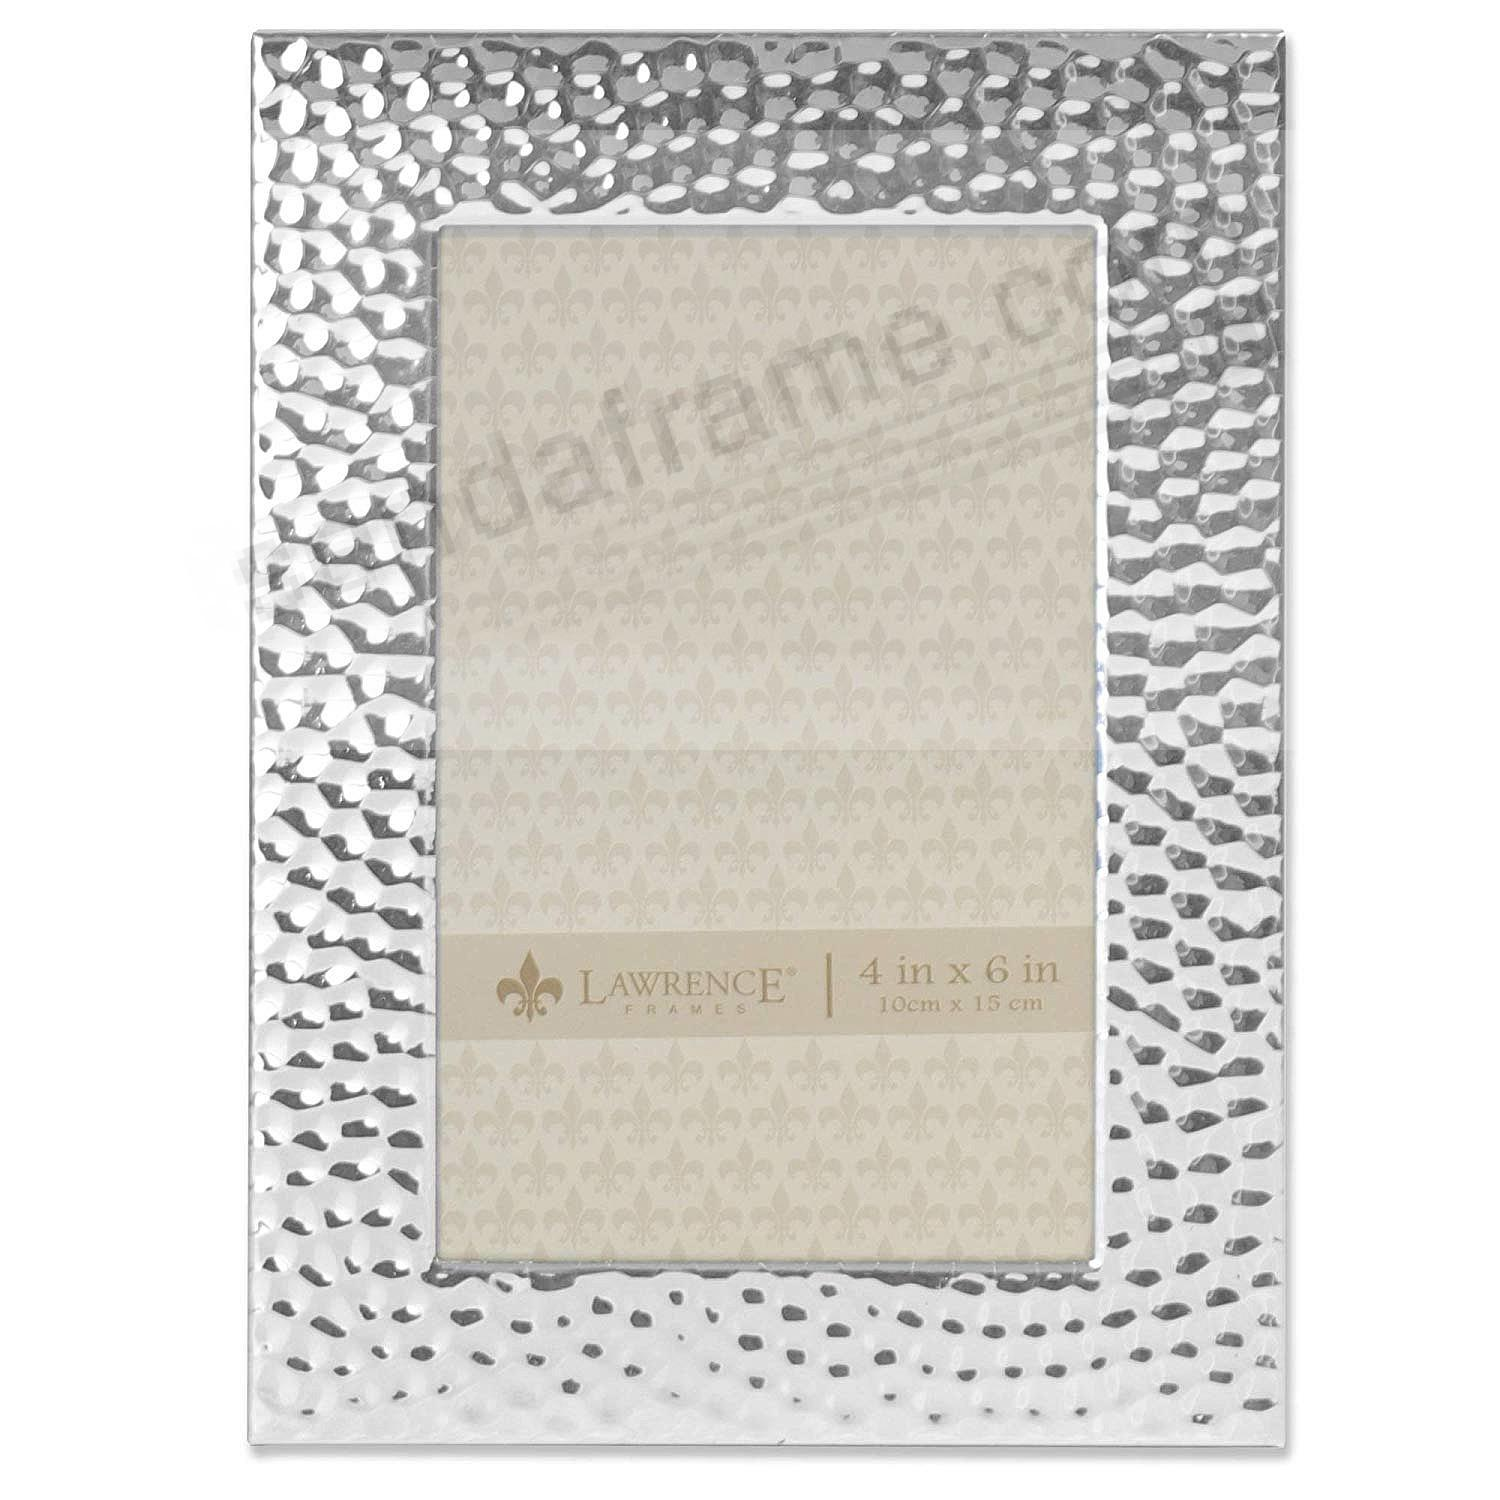 Hammered Silver finish 5x7 frame by Lawrence®